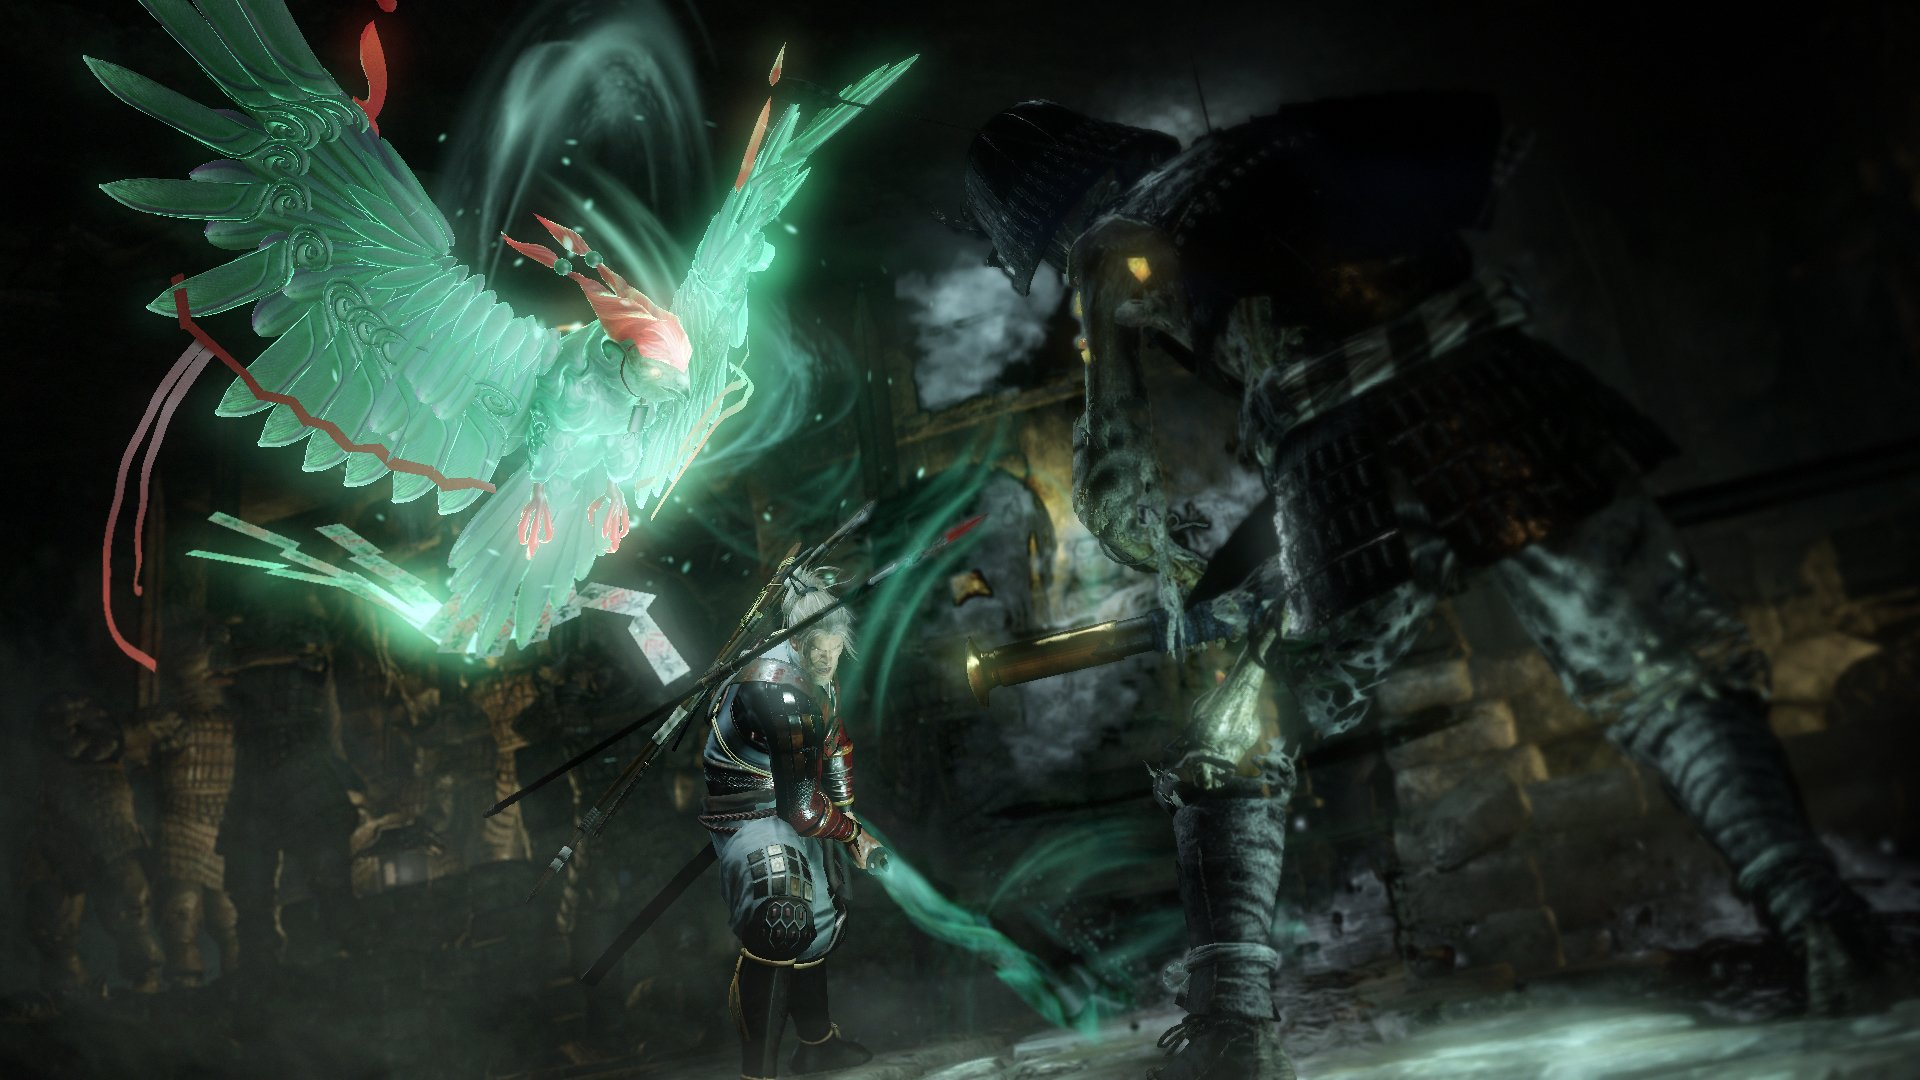 61 nioh hd wallpapers | background images - wallpaper abyss